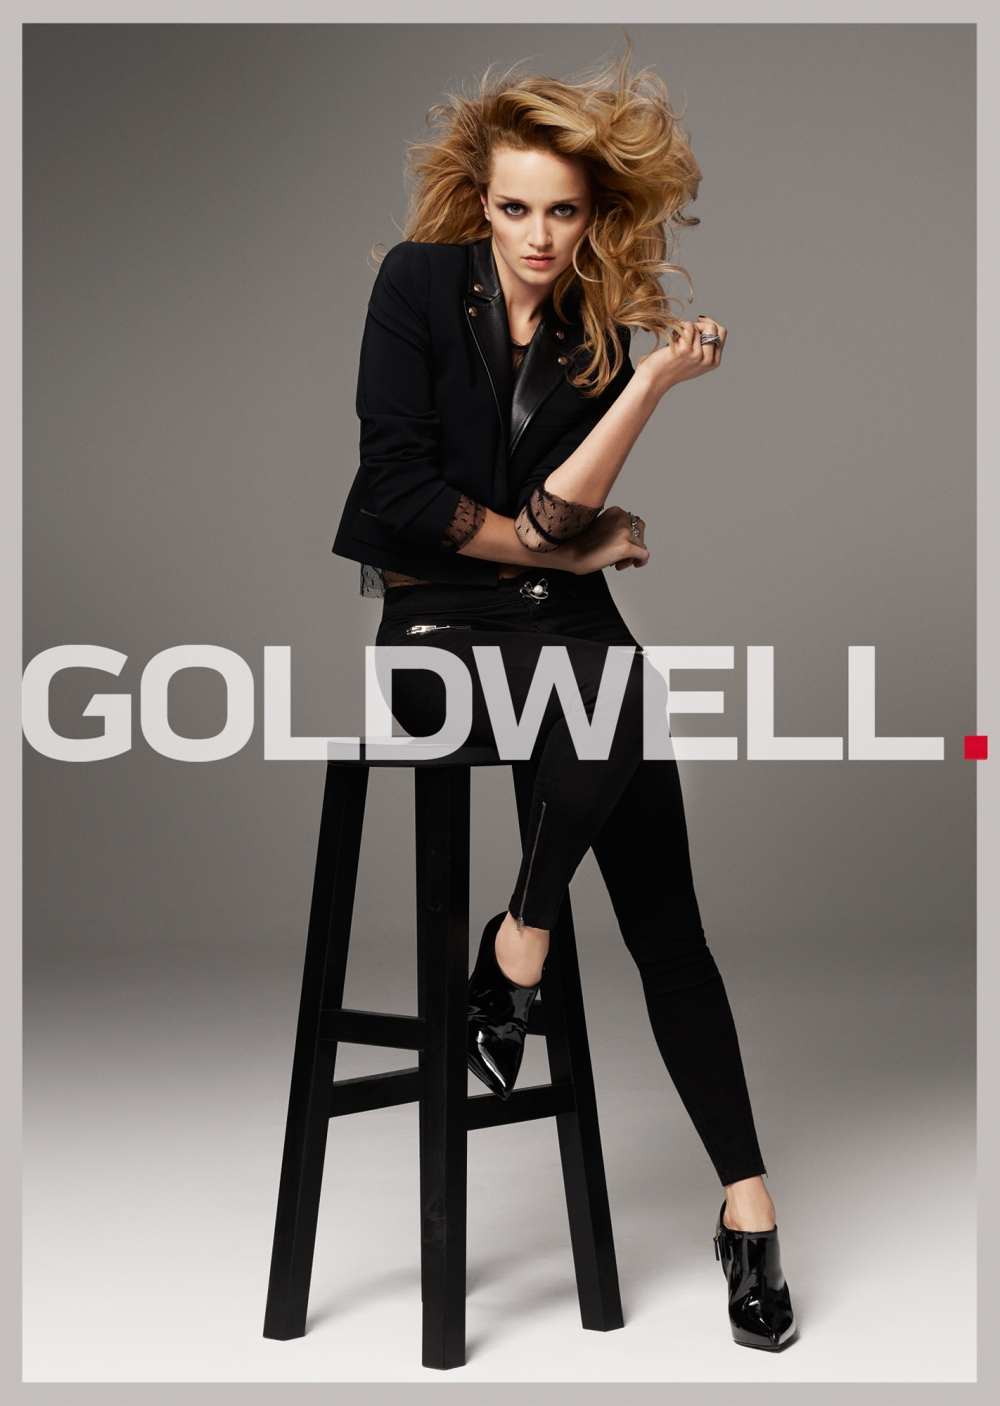 goldwell-by-ralph-mecke-5